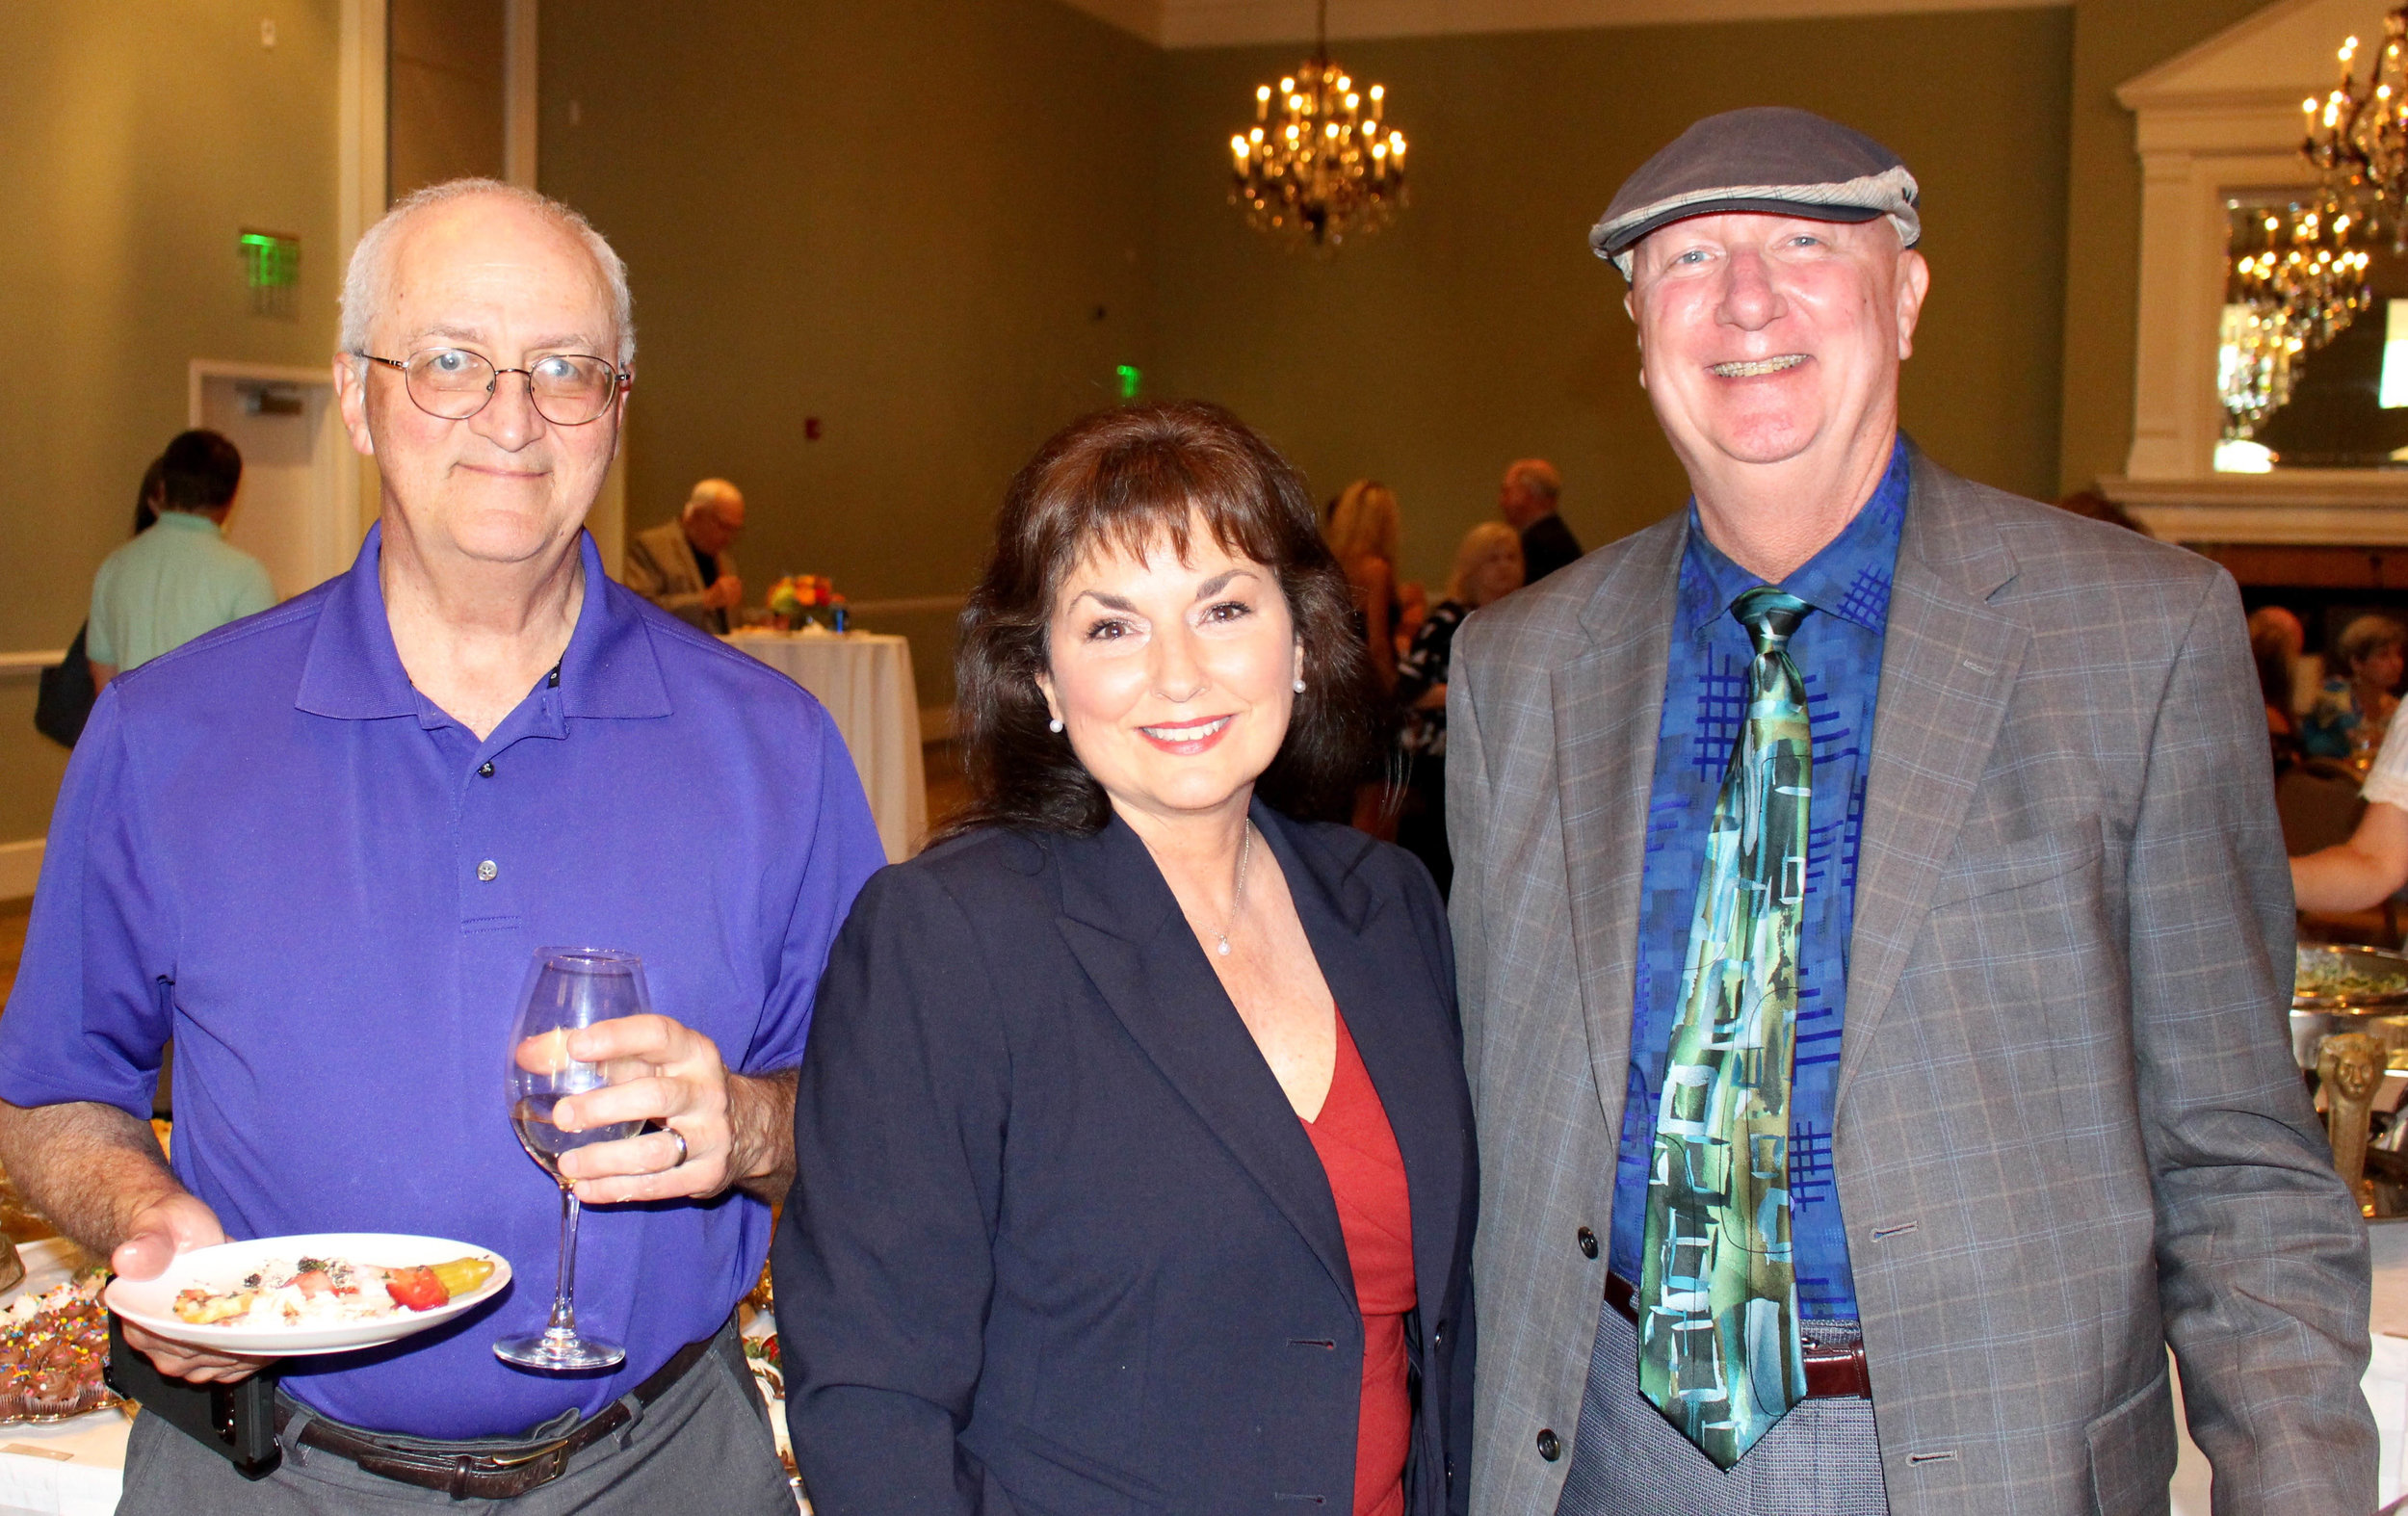 Dr. Michael Martin, Cindy Marsh and Patrick Flannery